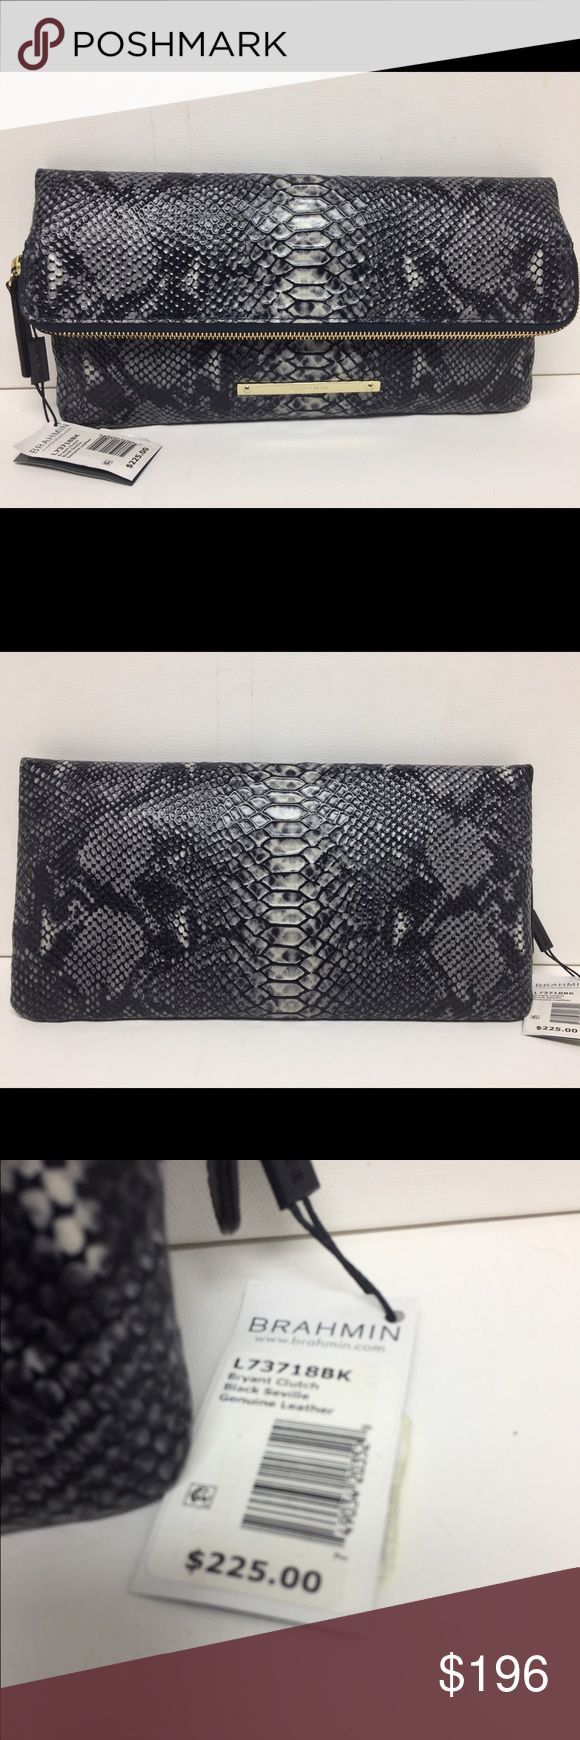 "NWT Brahmin Bryant Clutch Python L73718 Black Bryant Clutch in Embossed Leather Style #: L73718 BK  Color: Black Seville Lightweight & spacious.  Featured in black Seville (genuine leather embossed with a snake/python pattern in black, grey and white.)   Gold-tone hardware.   Brahmin-engraved plate on front.   Fold over zip clutch.   Brahmin's signature tan striped lining.   Two interior organizer pockets with pen pocket.   One interior zip pocket.   6.5"" H (when folded) x 13""L (approximate)…"